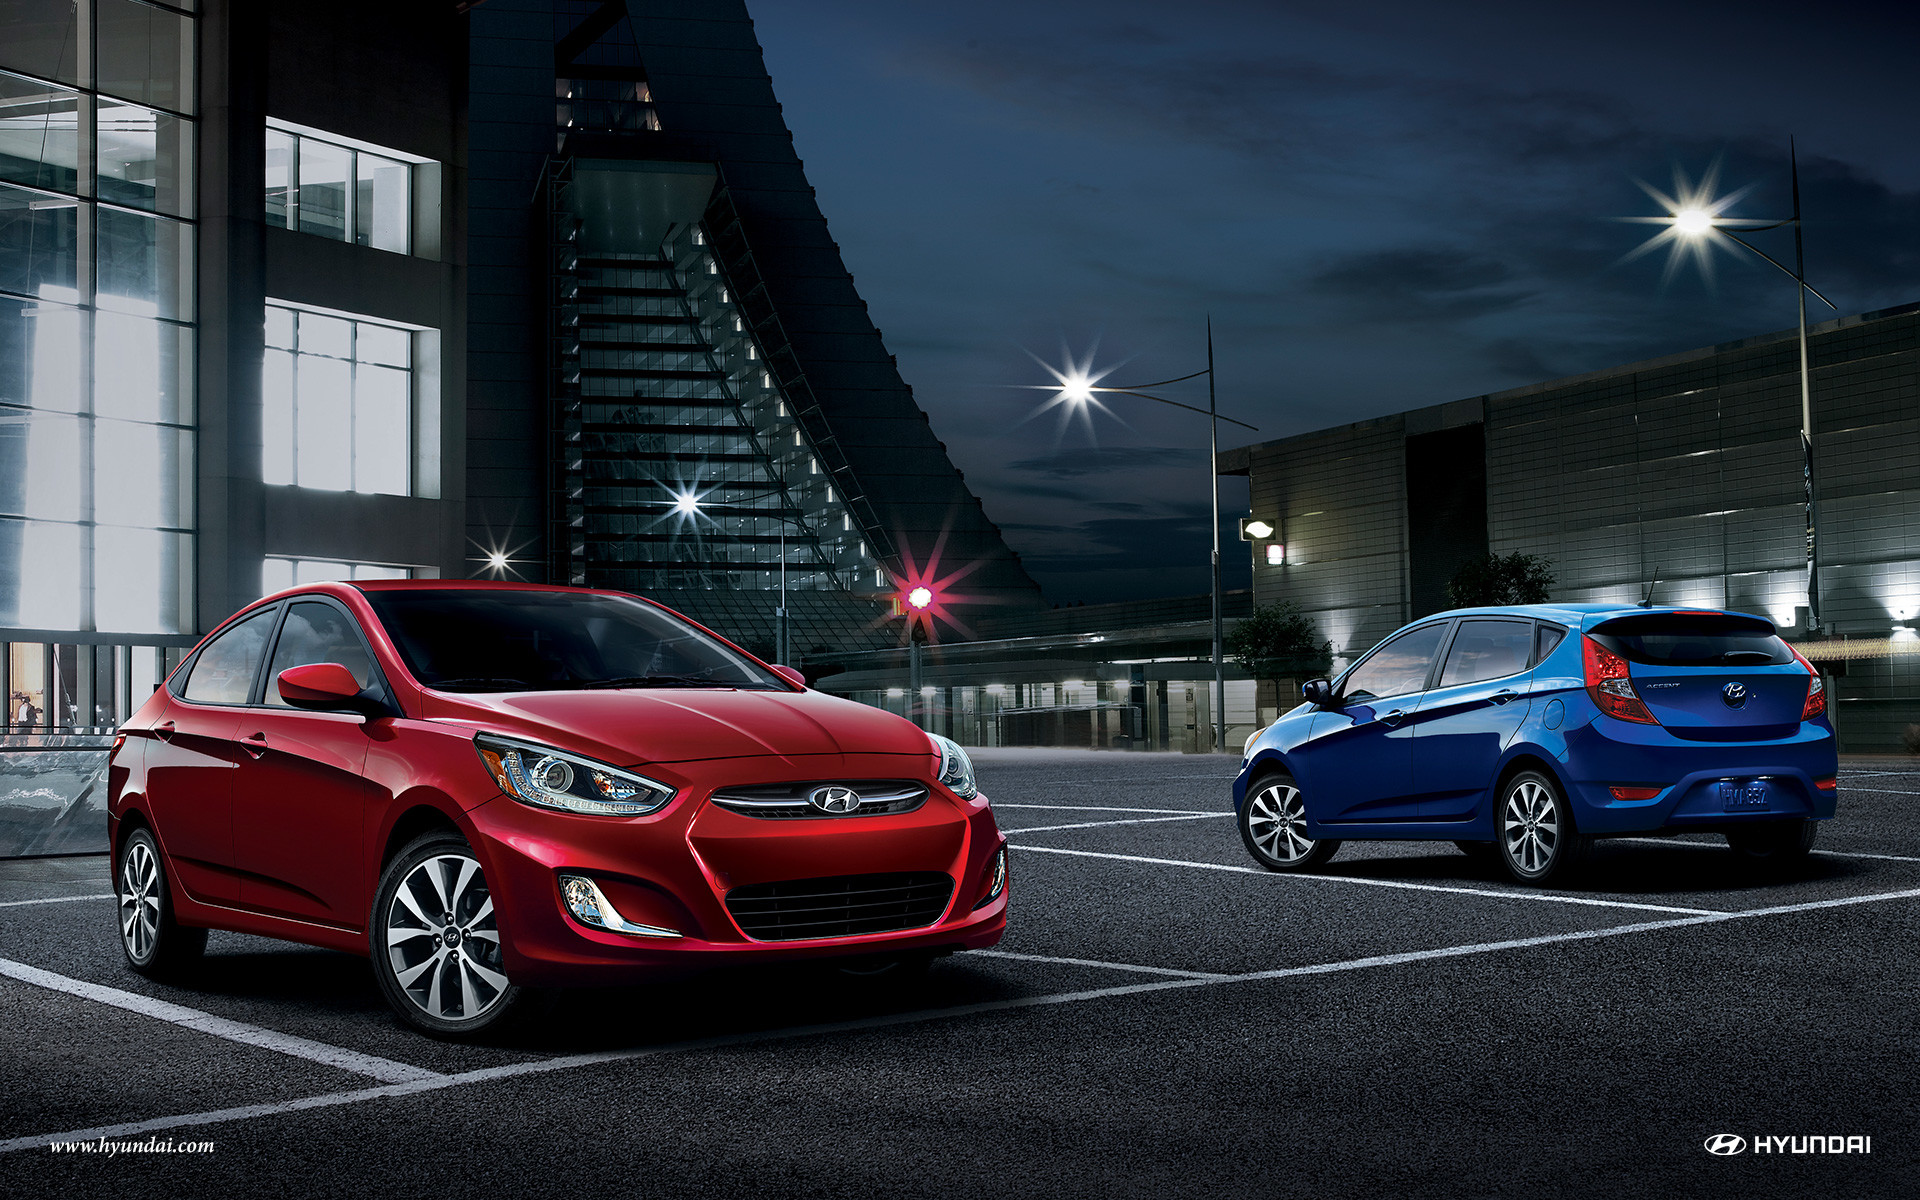 2015 Hyundai Accent four-door exterior